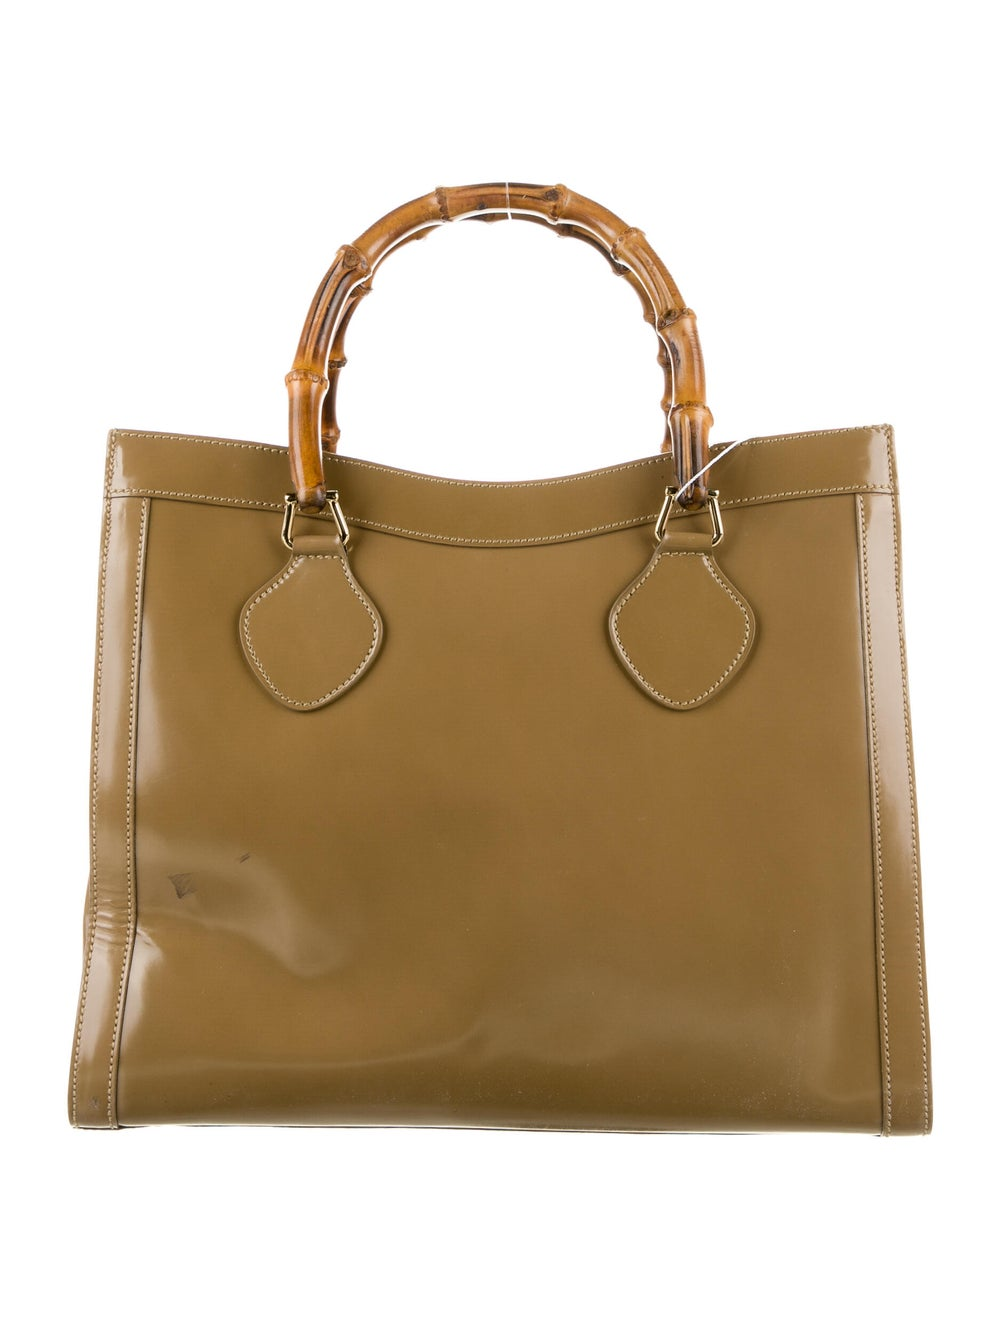 Gucci Vintage Leather Bamboo Diana Tote Brown - image 4